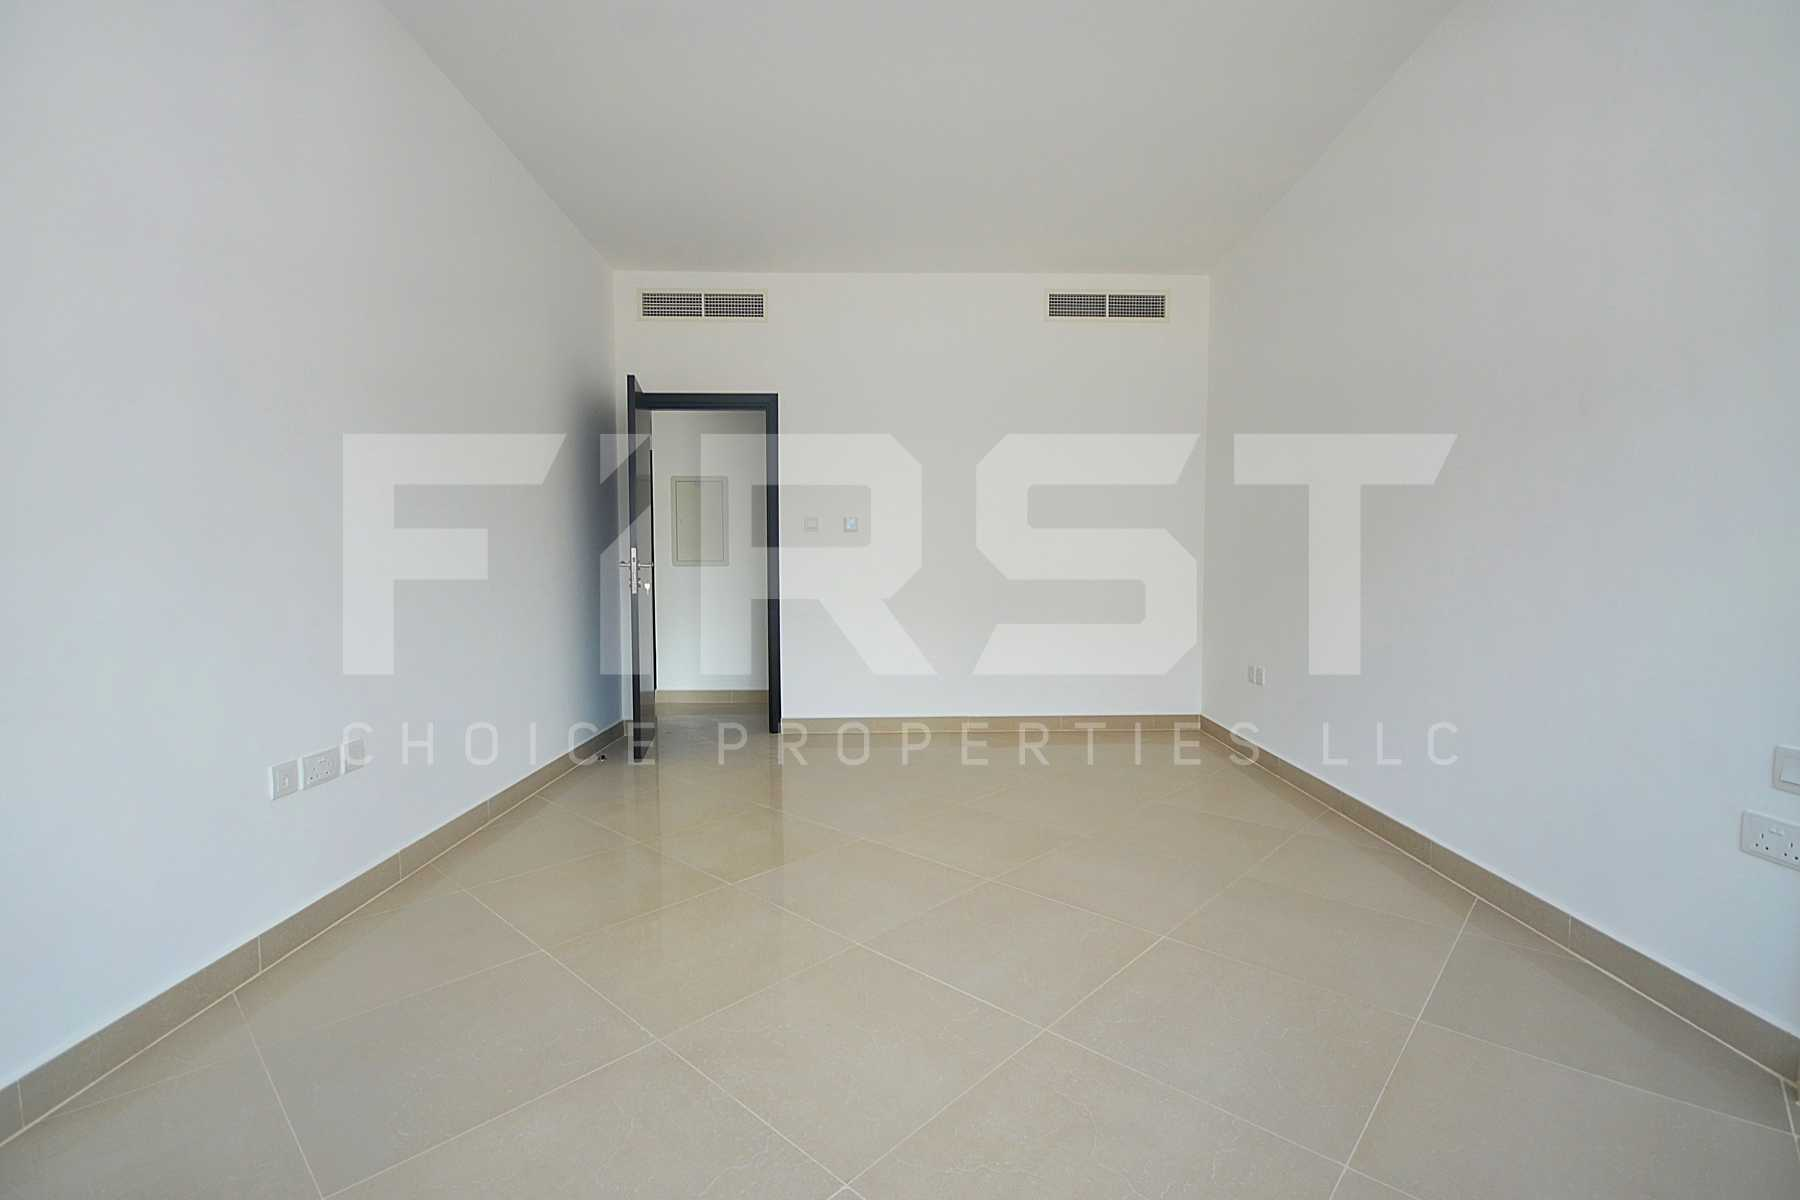 7. Internal Photo of 1 Bedroom Apartment Type C in Al Reef Downtown Al Reef Abu Dhabi UAE 103 sq.m 1108 sq.ft (7).jpg